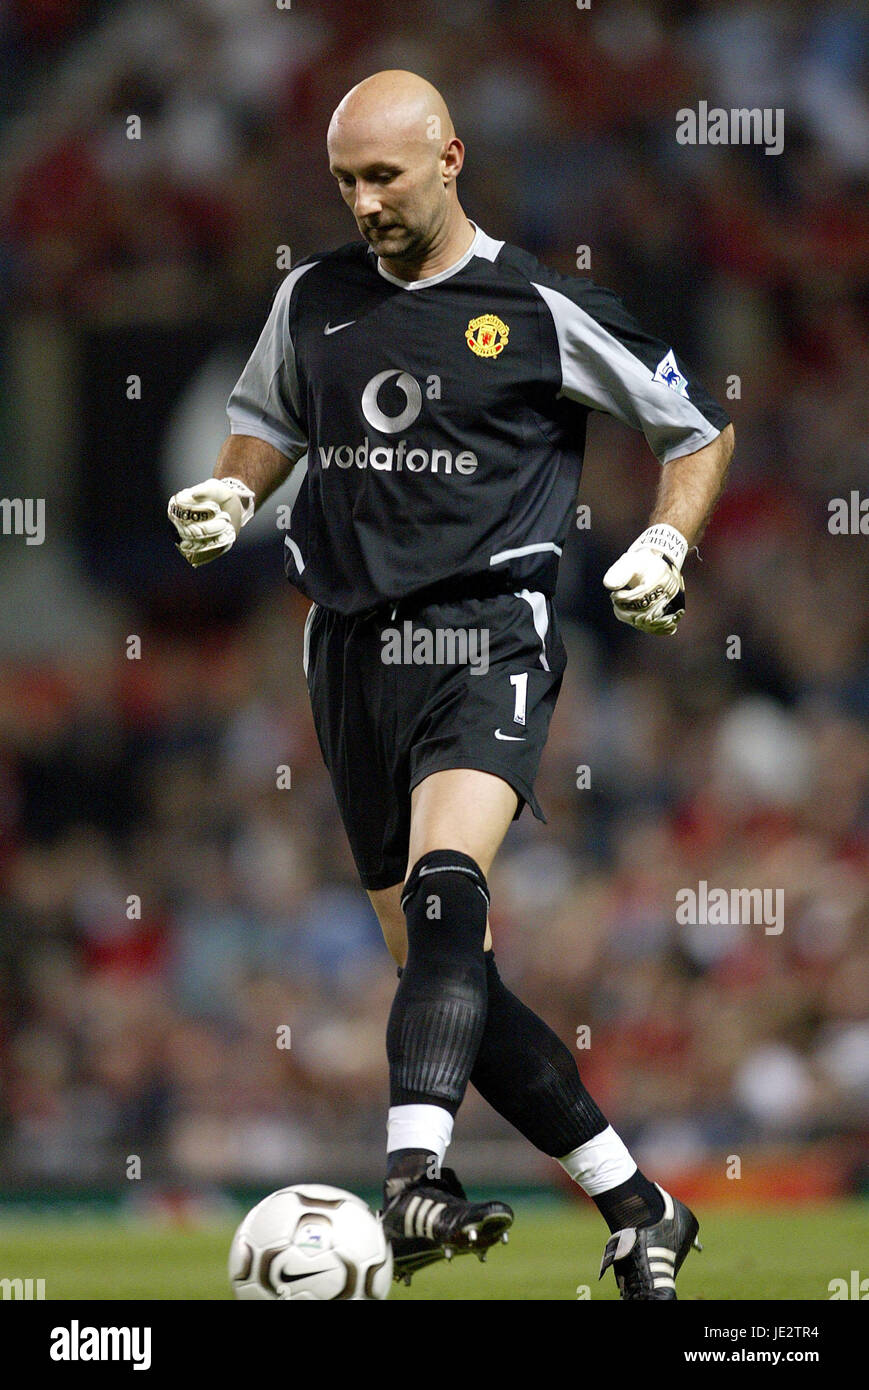 ba1626b3d32 FABIEN BARTHEZ MANCHESTER UNITED FC Old Trafford Manchester en Angleterre  le 11 septembre 2002 Photo Stock